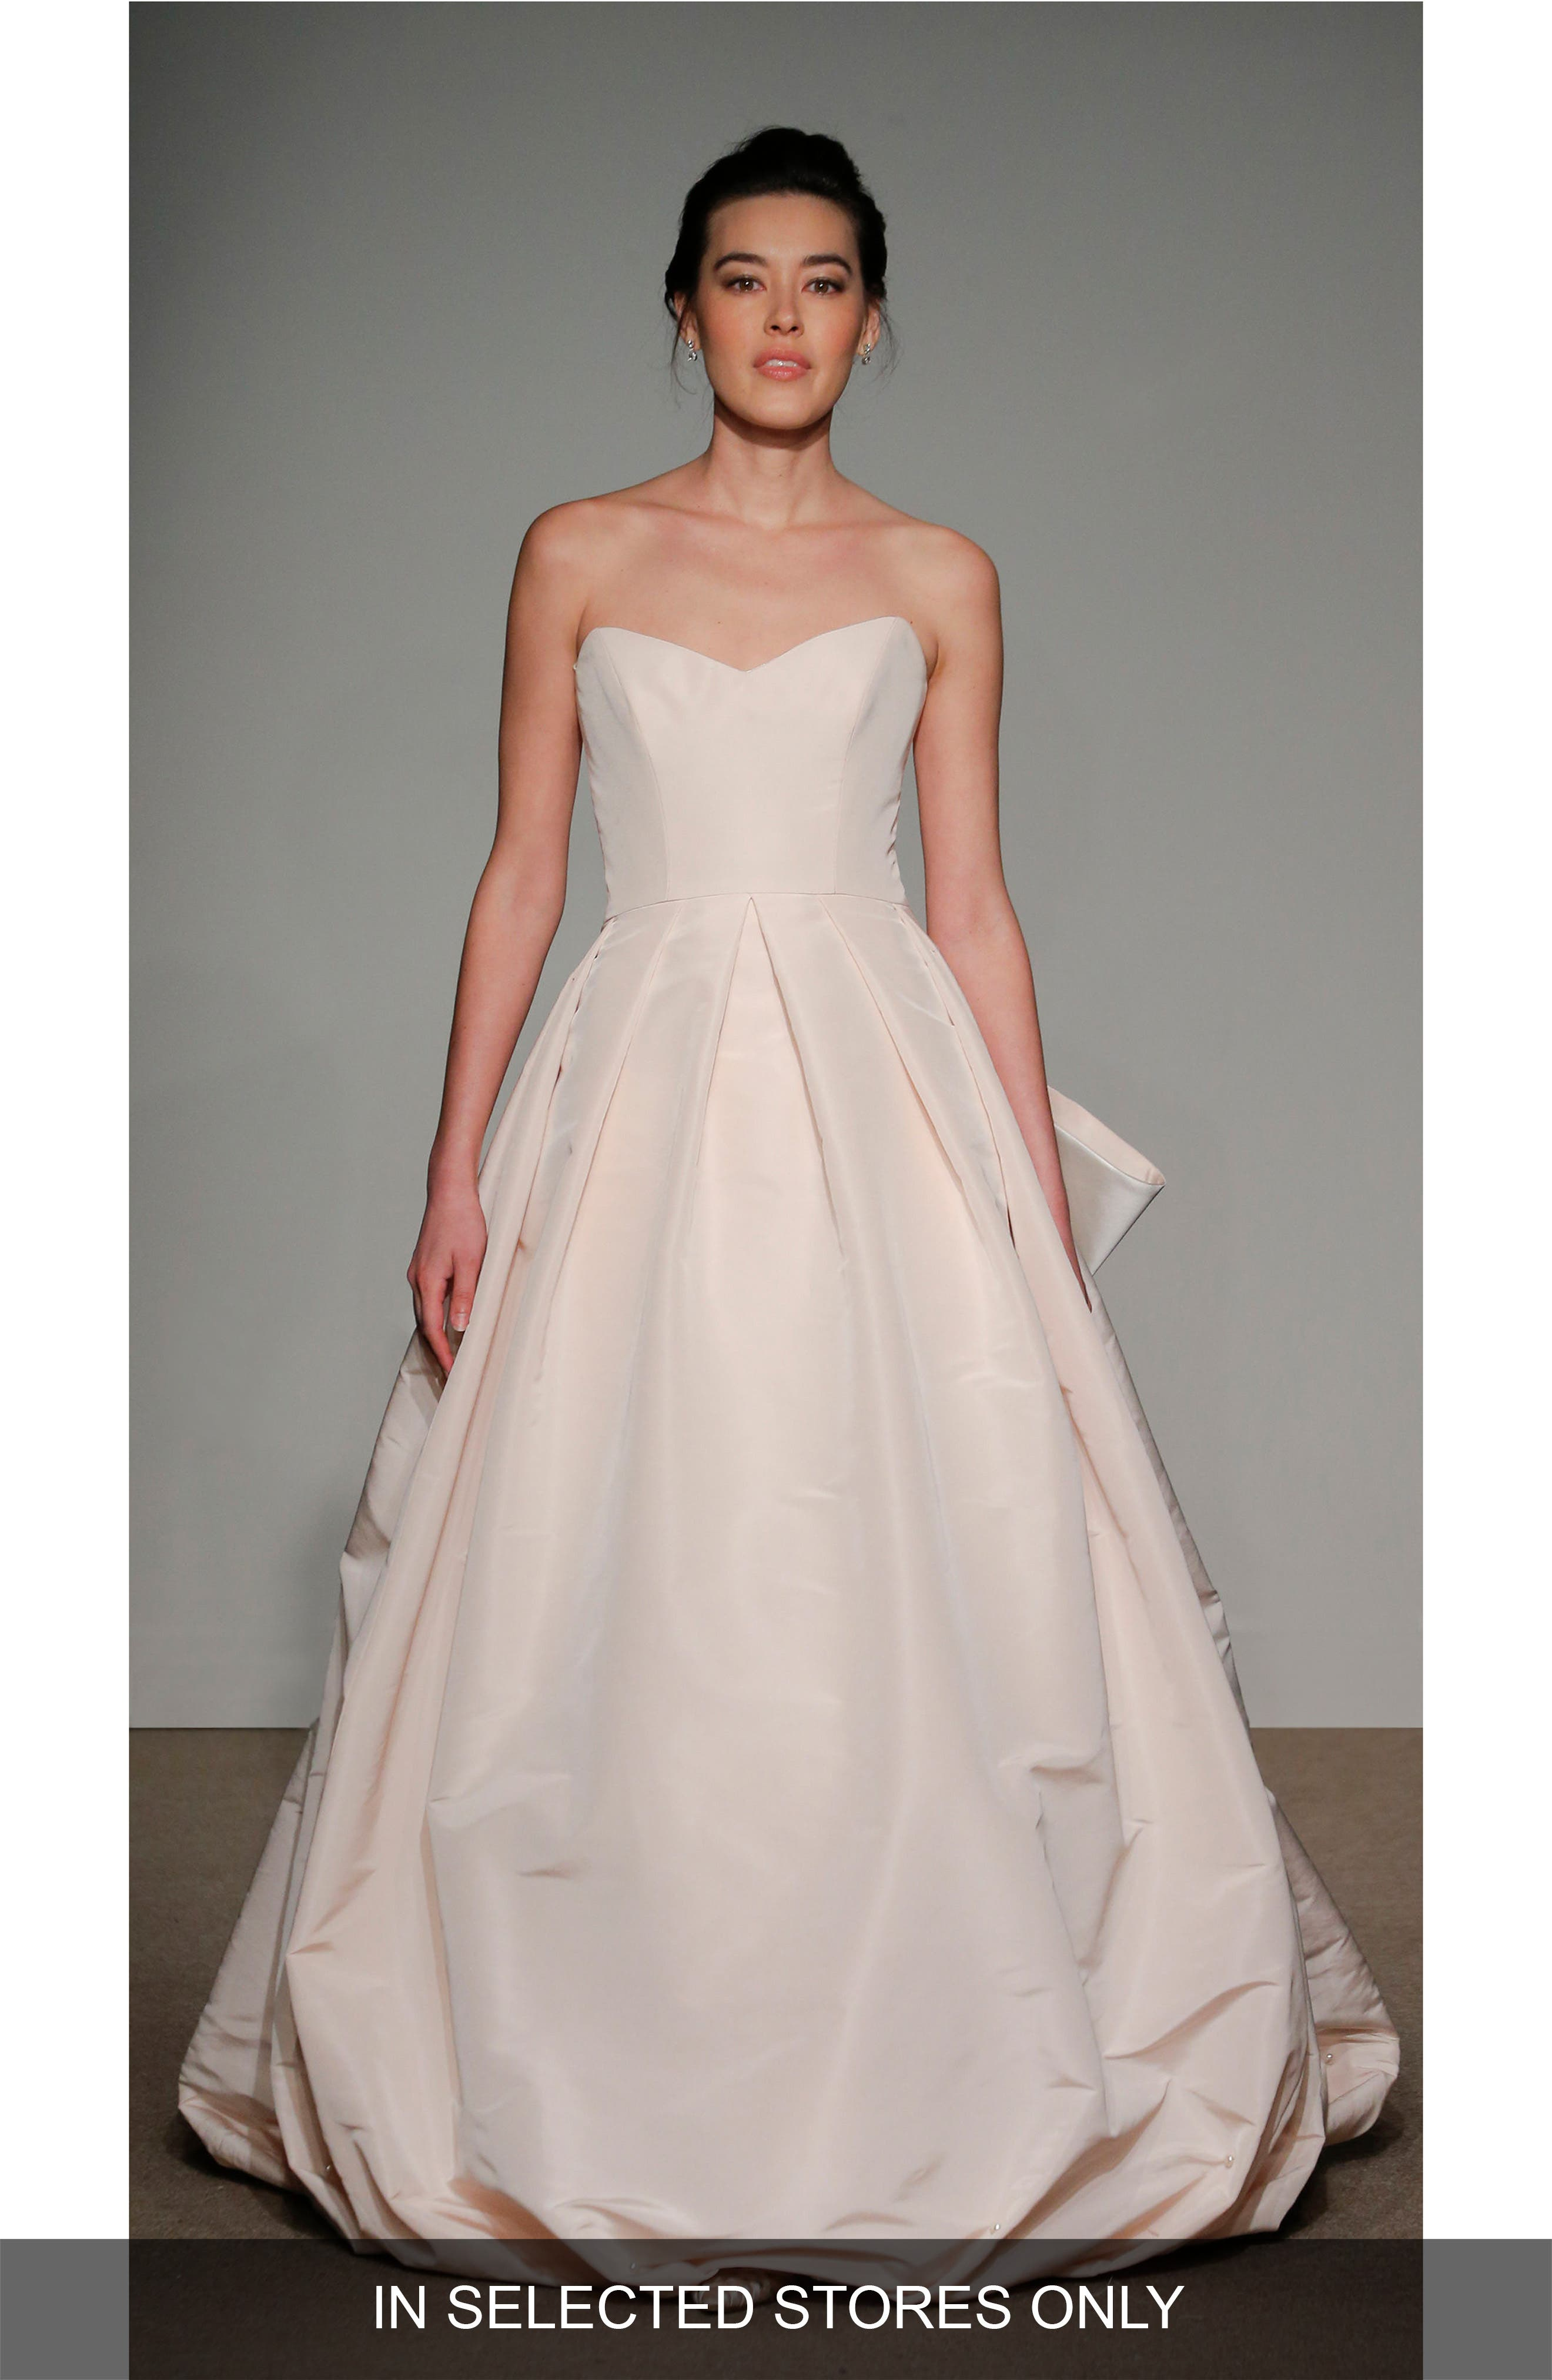 Anna Maier Couture Cheri Bow Detail Strapless Faille Ballgown (In Selected Stores Only)